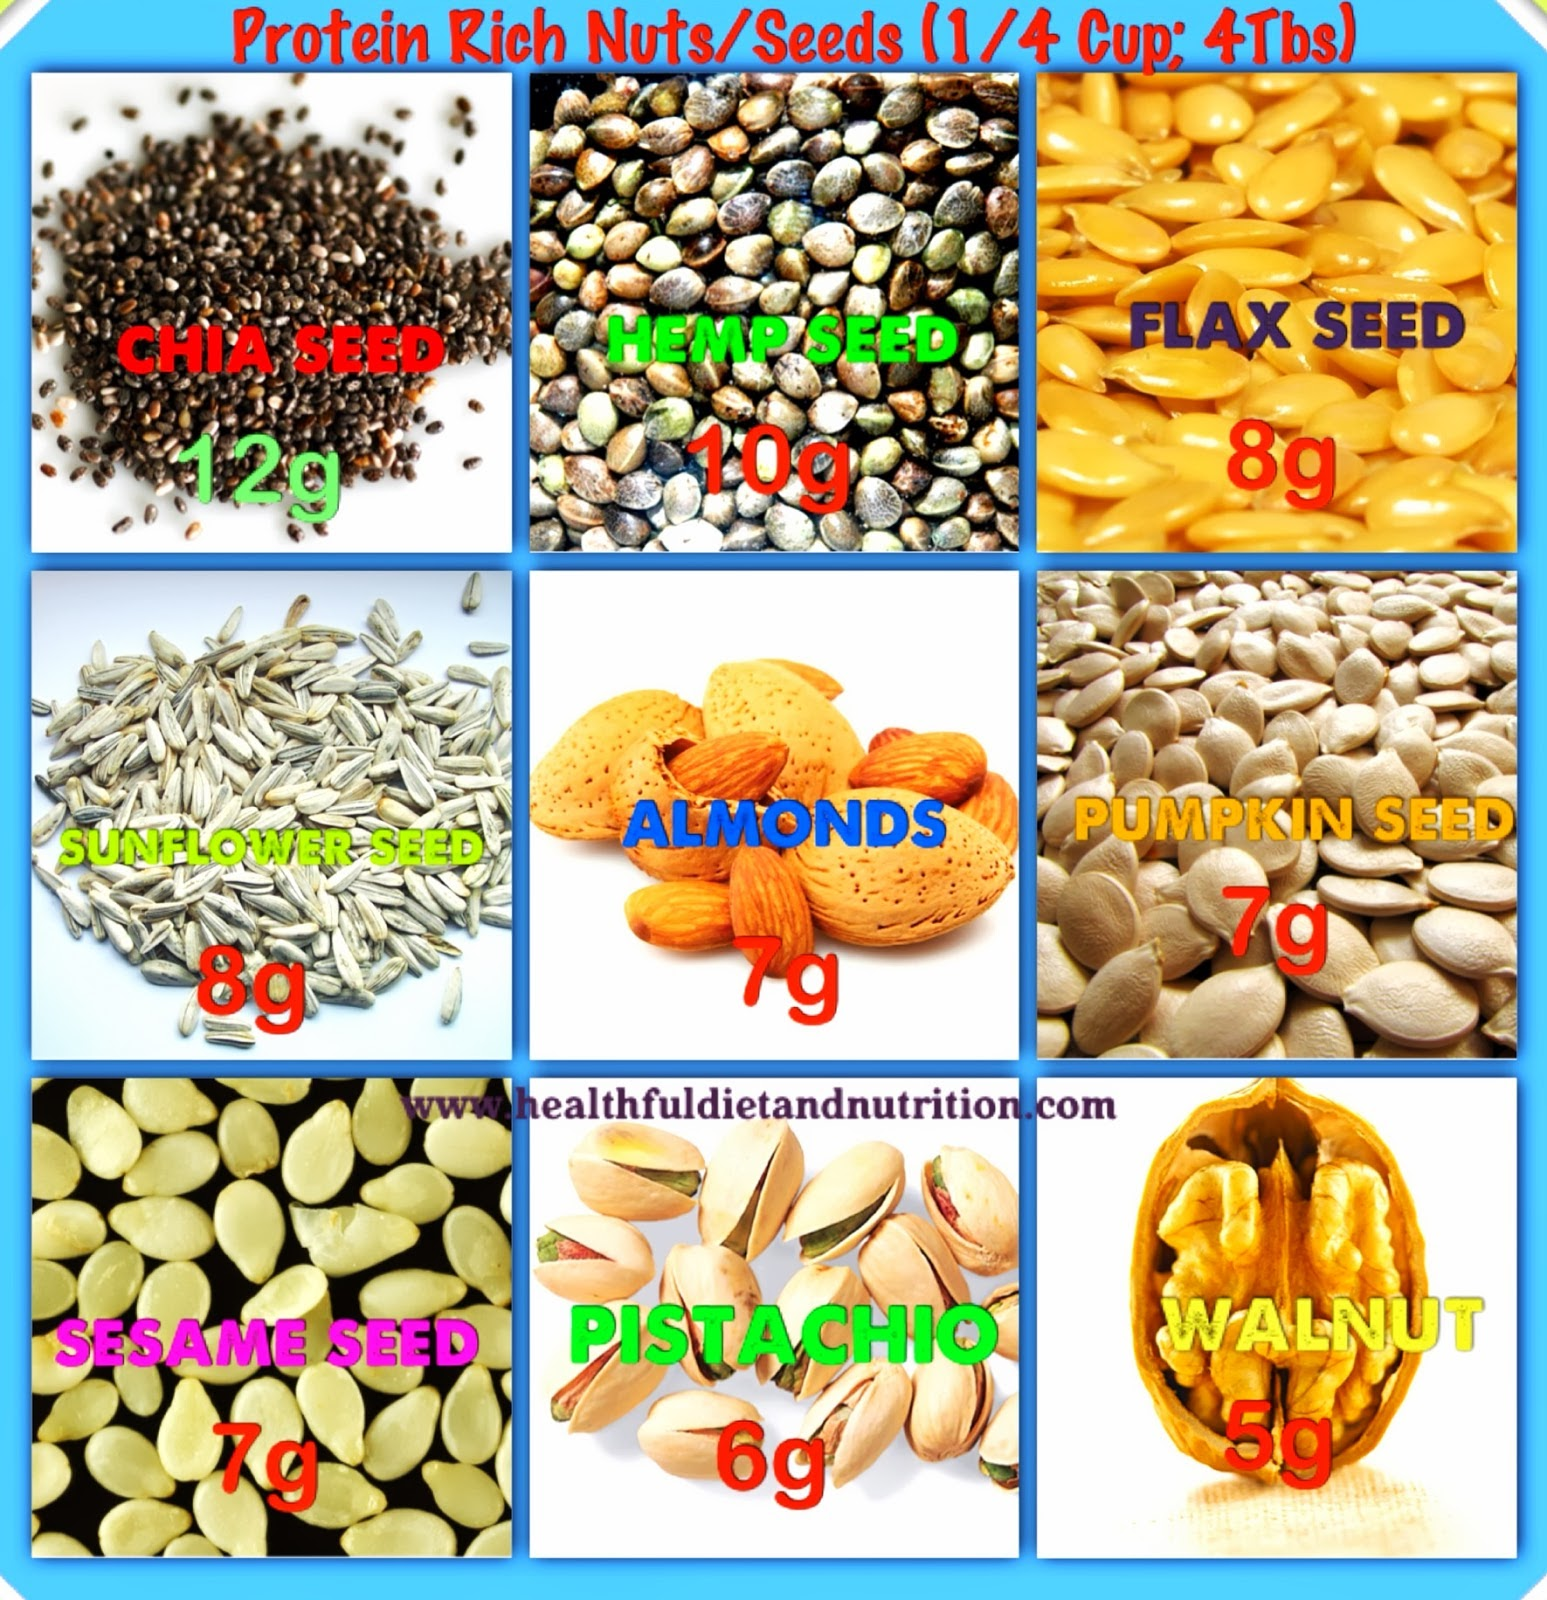 Protein Rich Nuts and Seeds